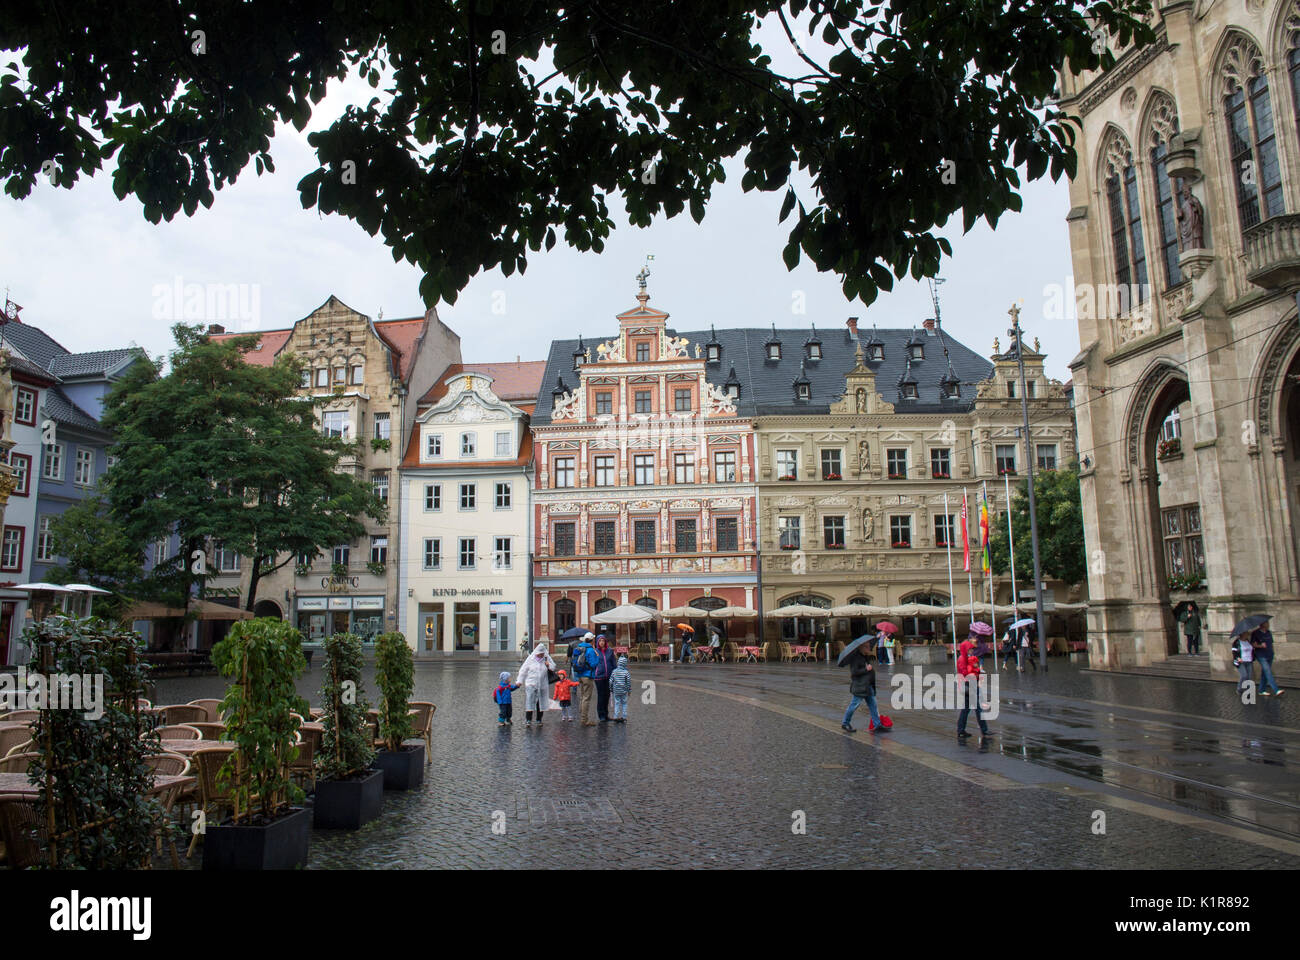 The Fischmarkt or market square in Erfurt, Thuringia, Germany - Stock Image